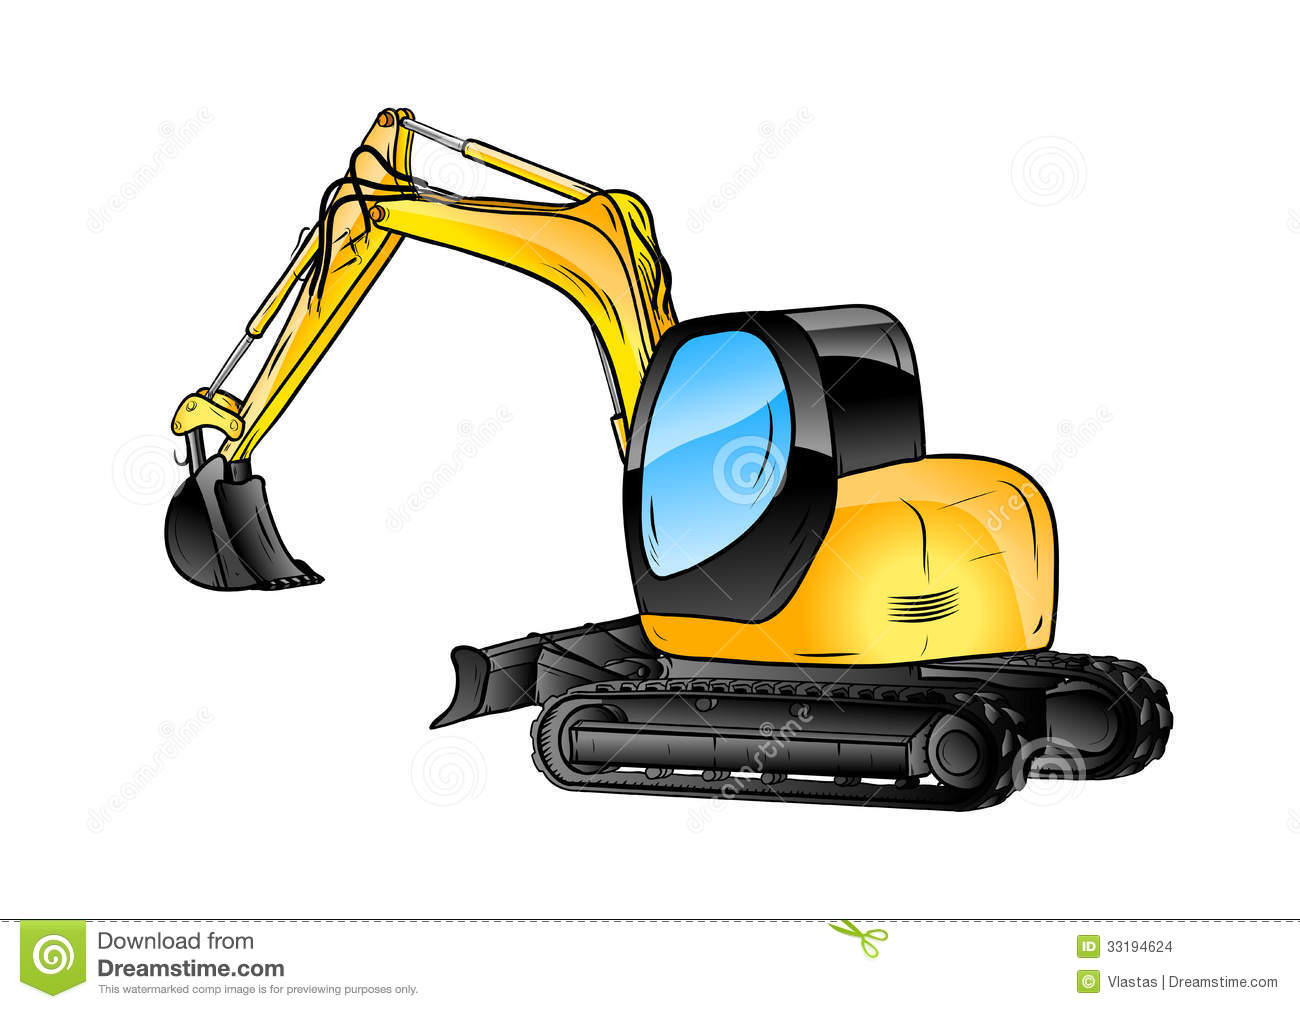 Excavator Isolated Stock Vector Illustration Of Pencil